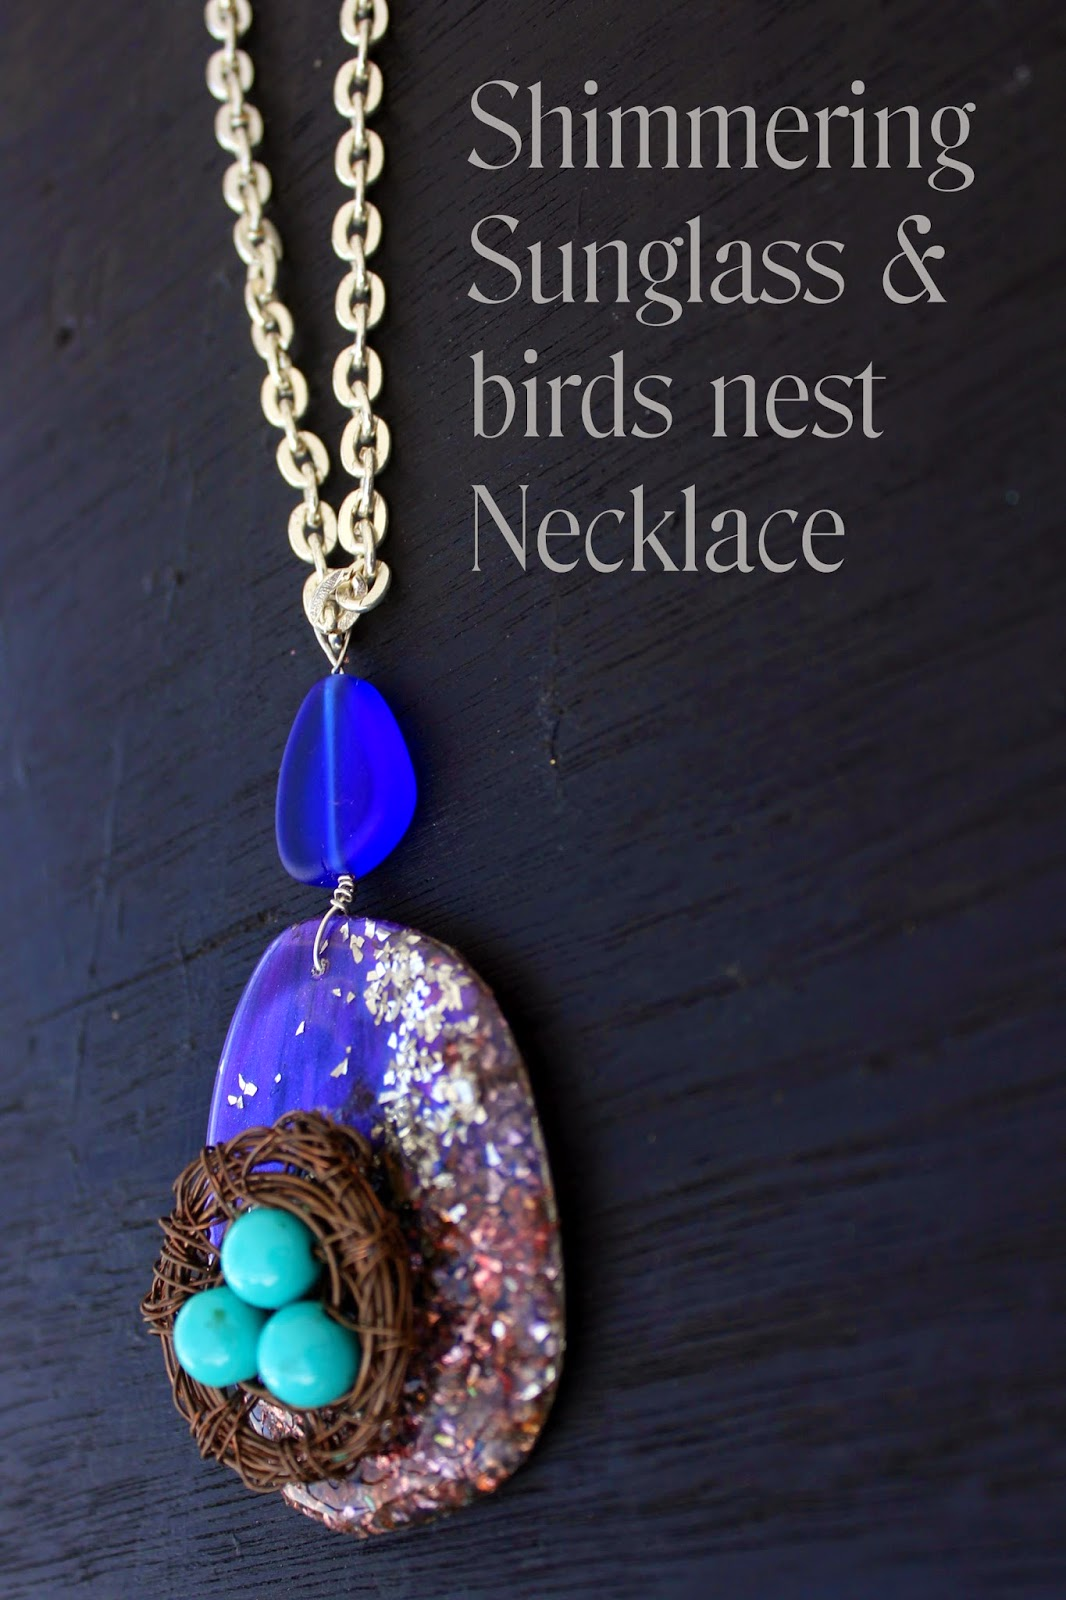 http://www.craftpaperscissors.com/how-to-make-a-bird-nest-necklace/